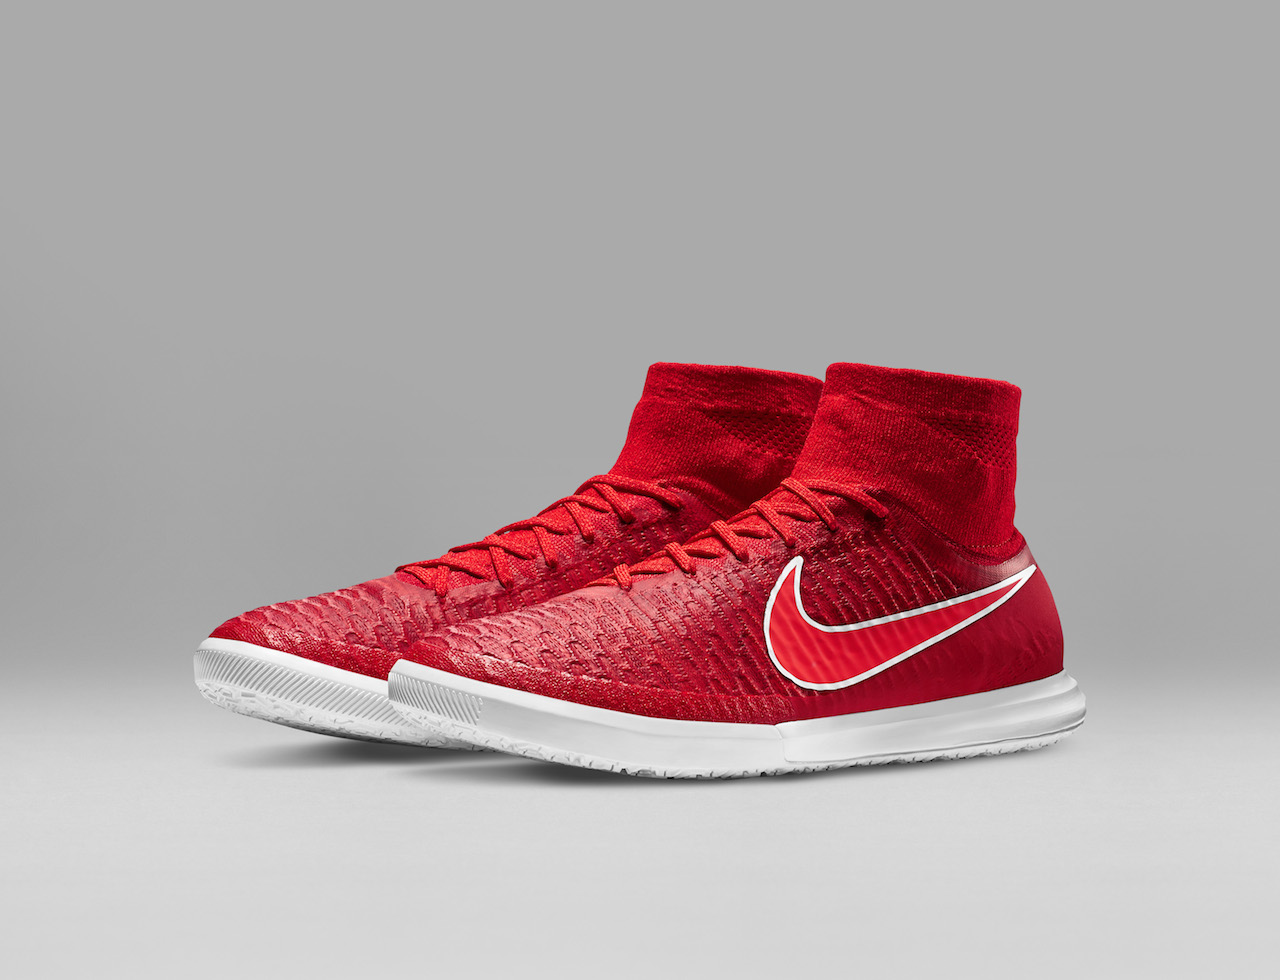 nike magistax red